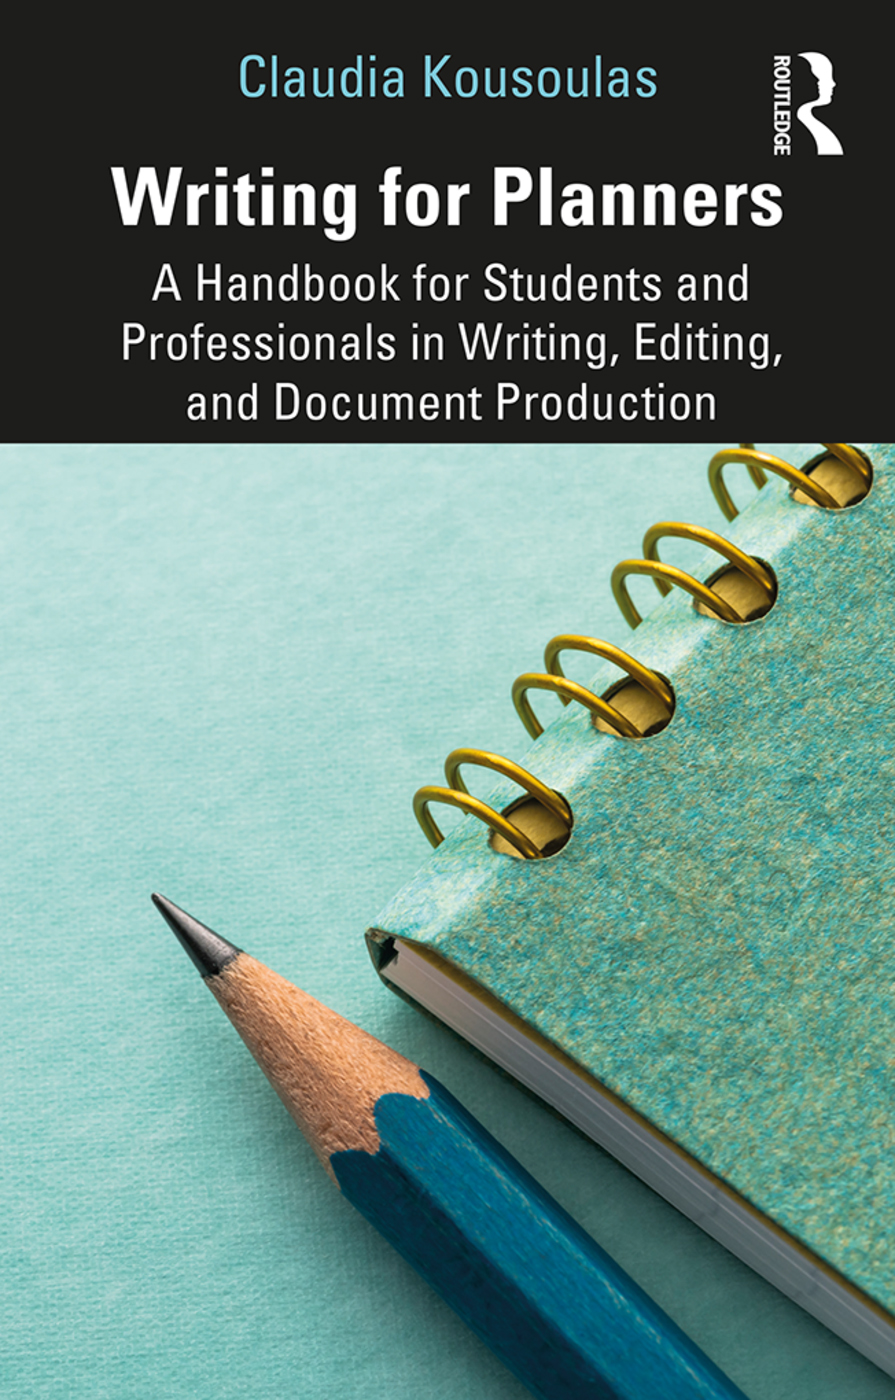 Writing for Planners: A Handbook for Students and Professionals in Writing, Editing, and Document Production book cover